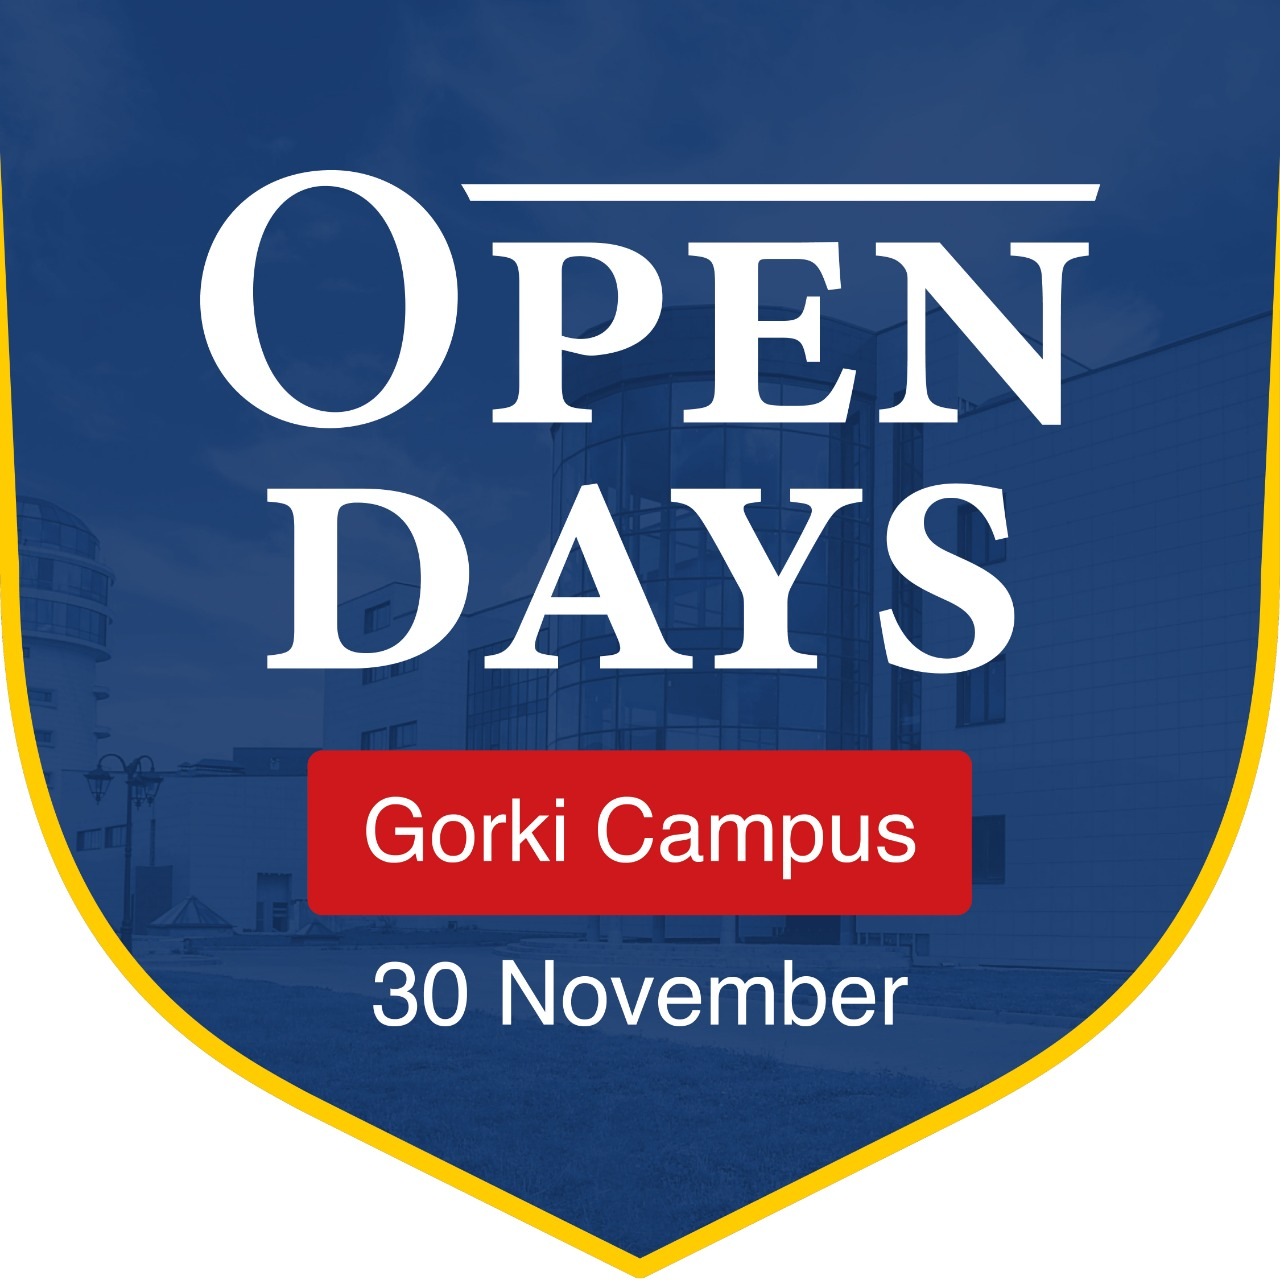 Welcome to Open day in Gorki campus